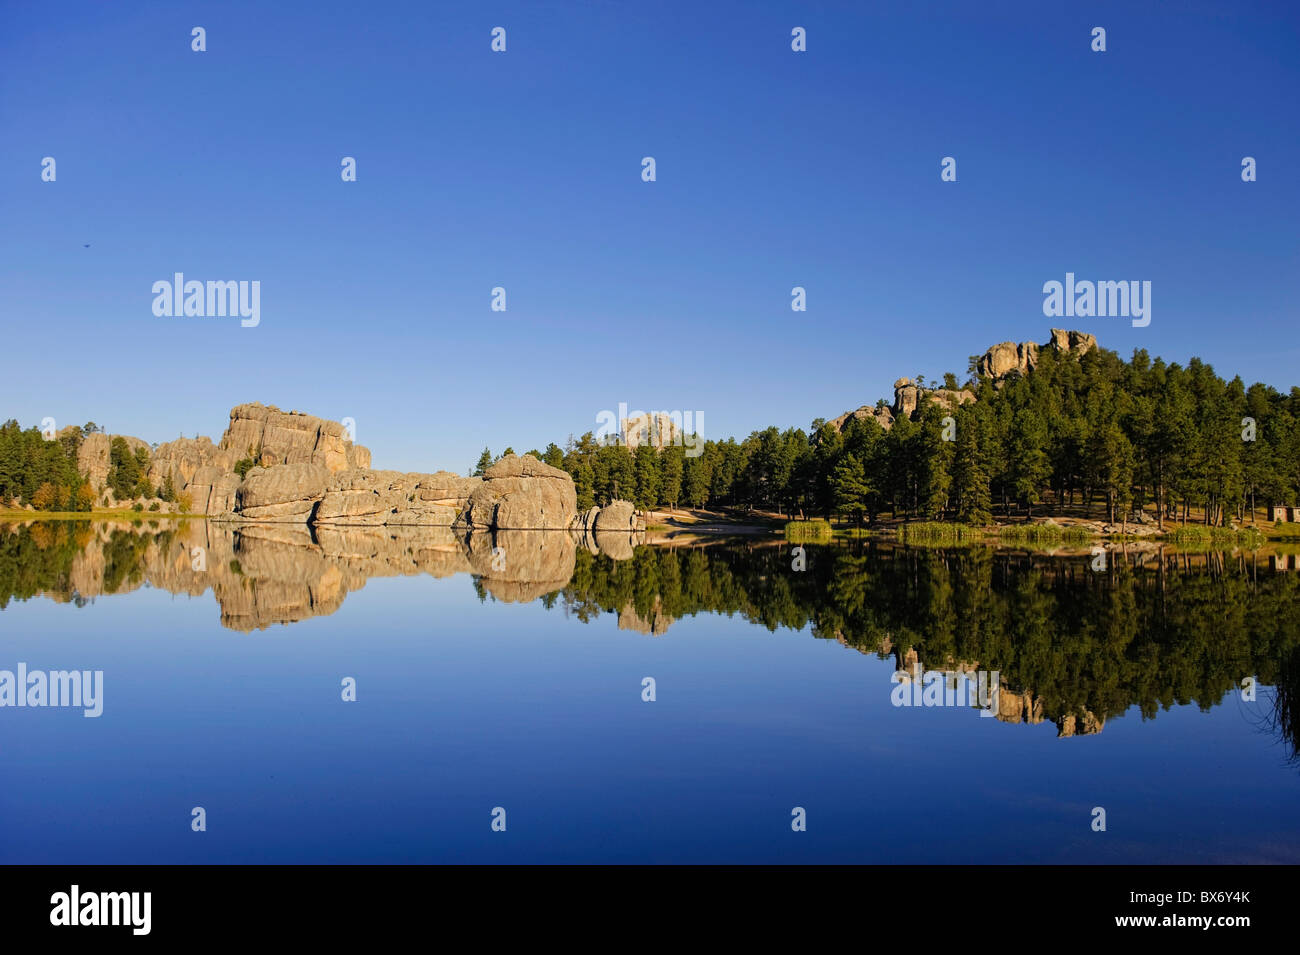 Sylvan Lake, Black Hills National Forest, Custer State Park, South Dakota - Stock Image